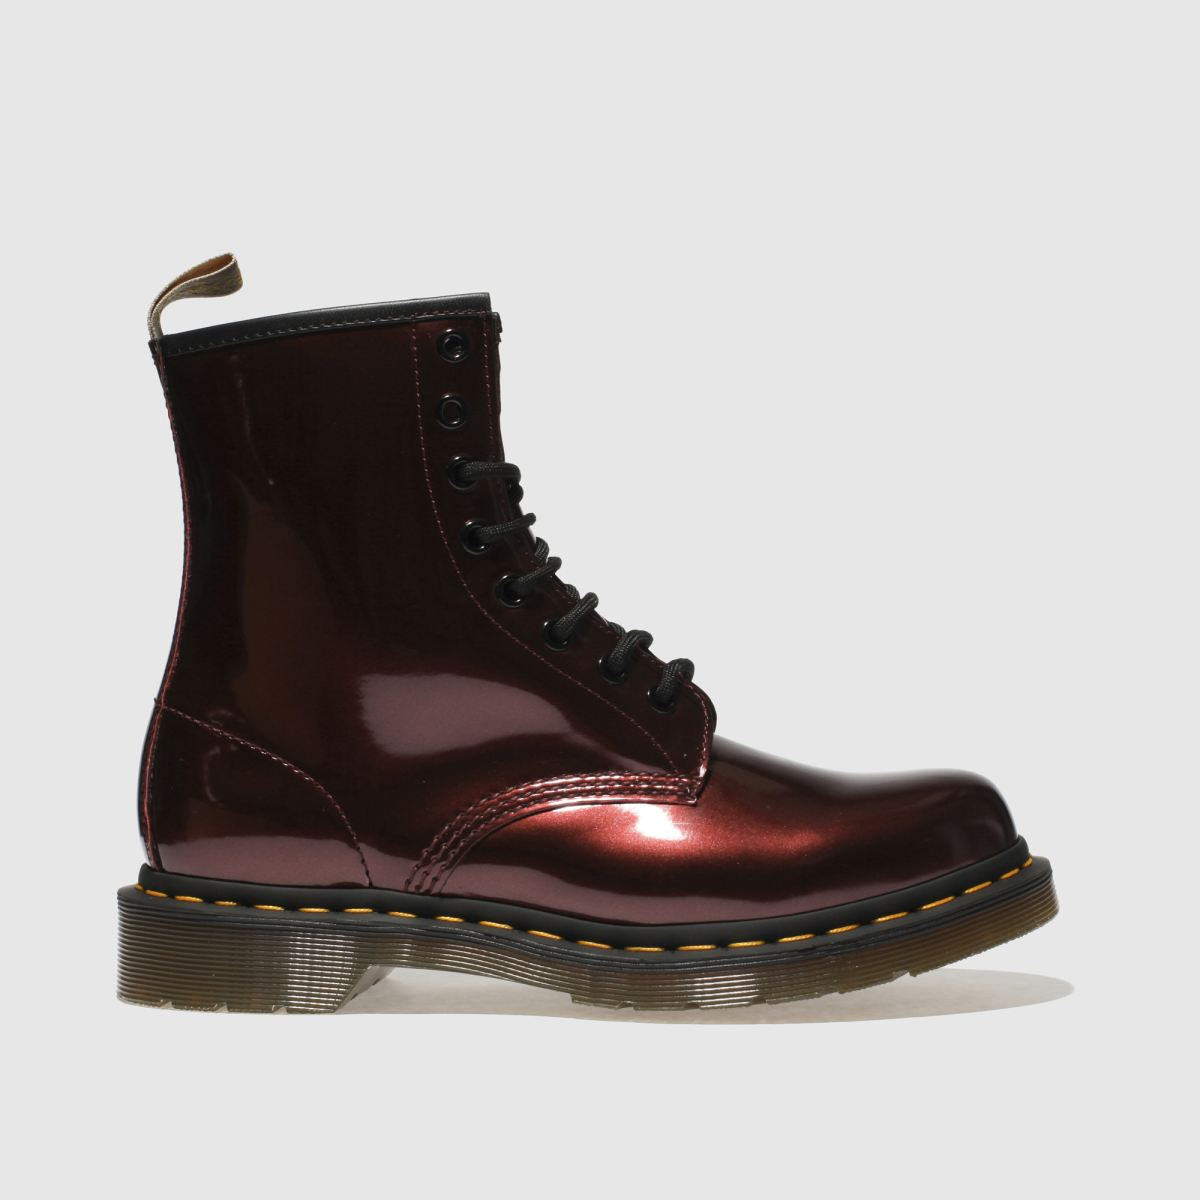 Dr Martens Burgundy 1460 Vegan Chrome 8 Eye Boots